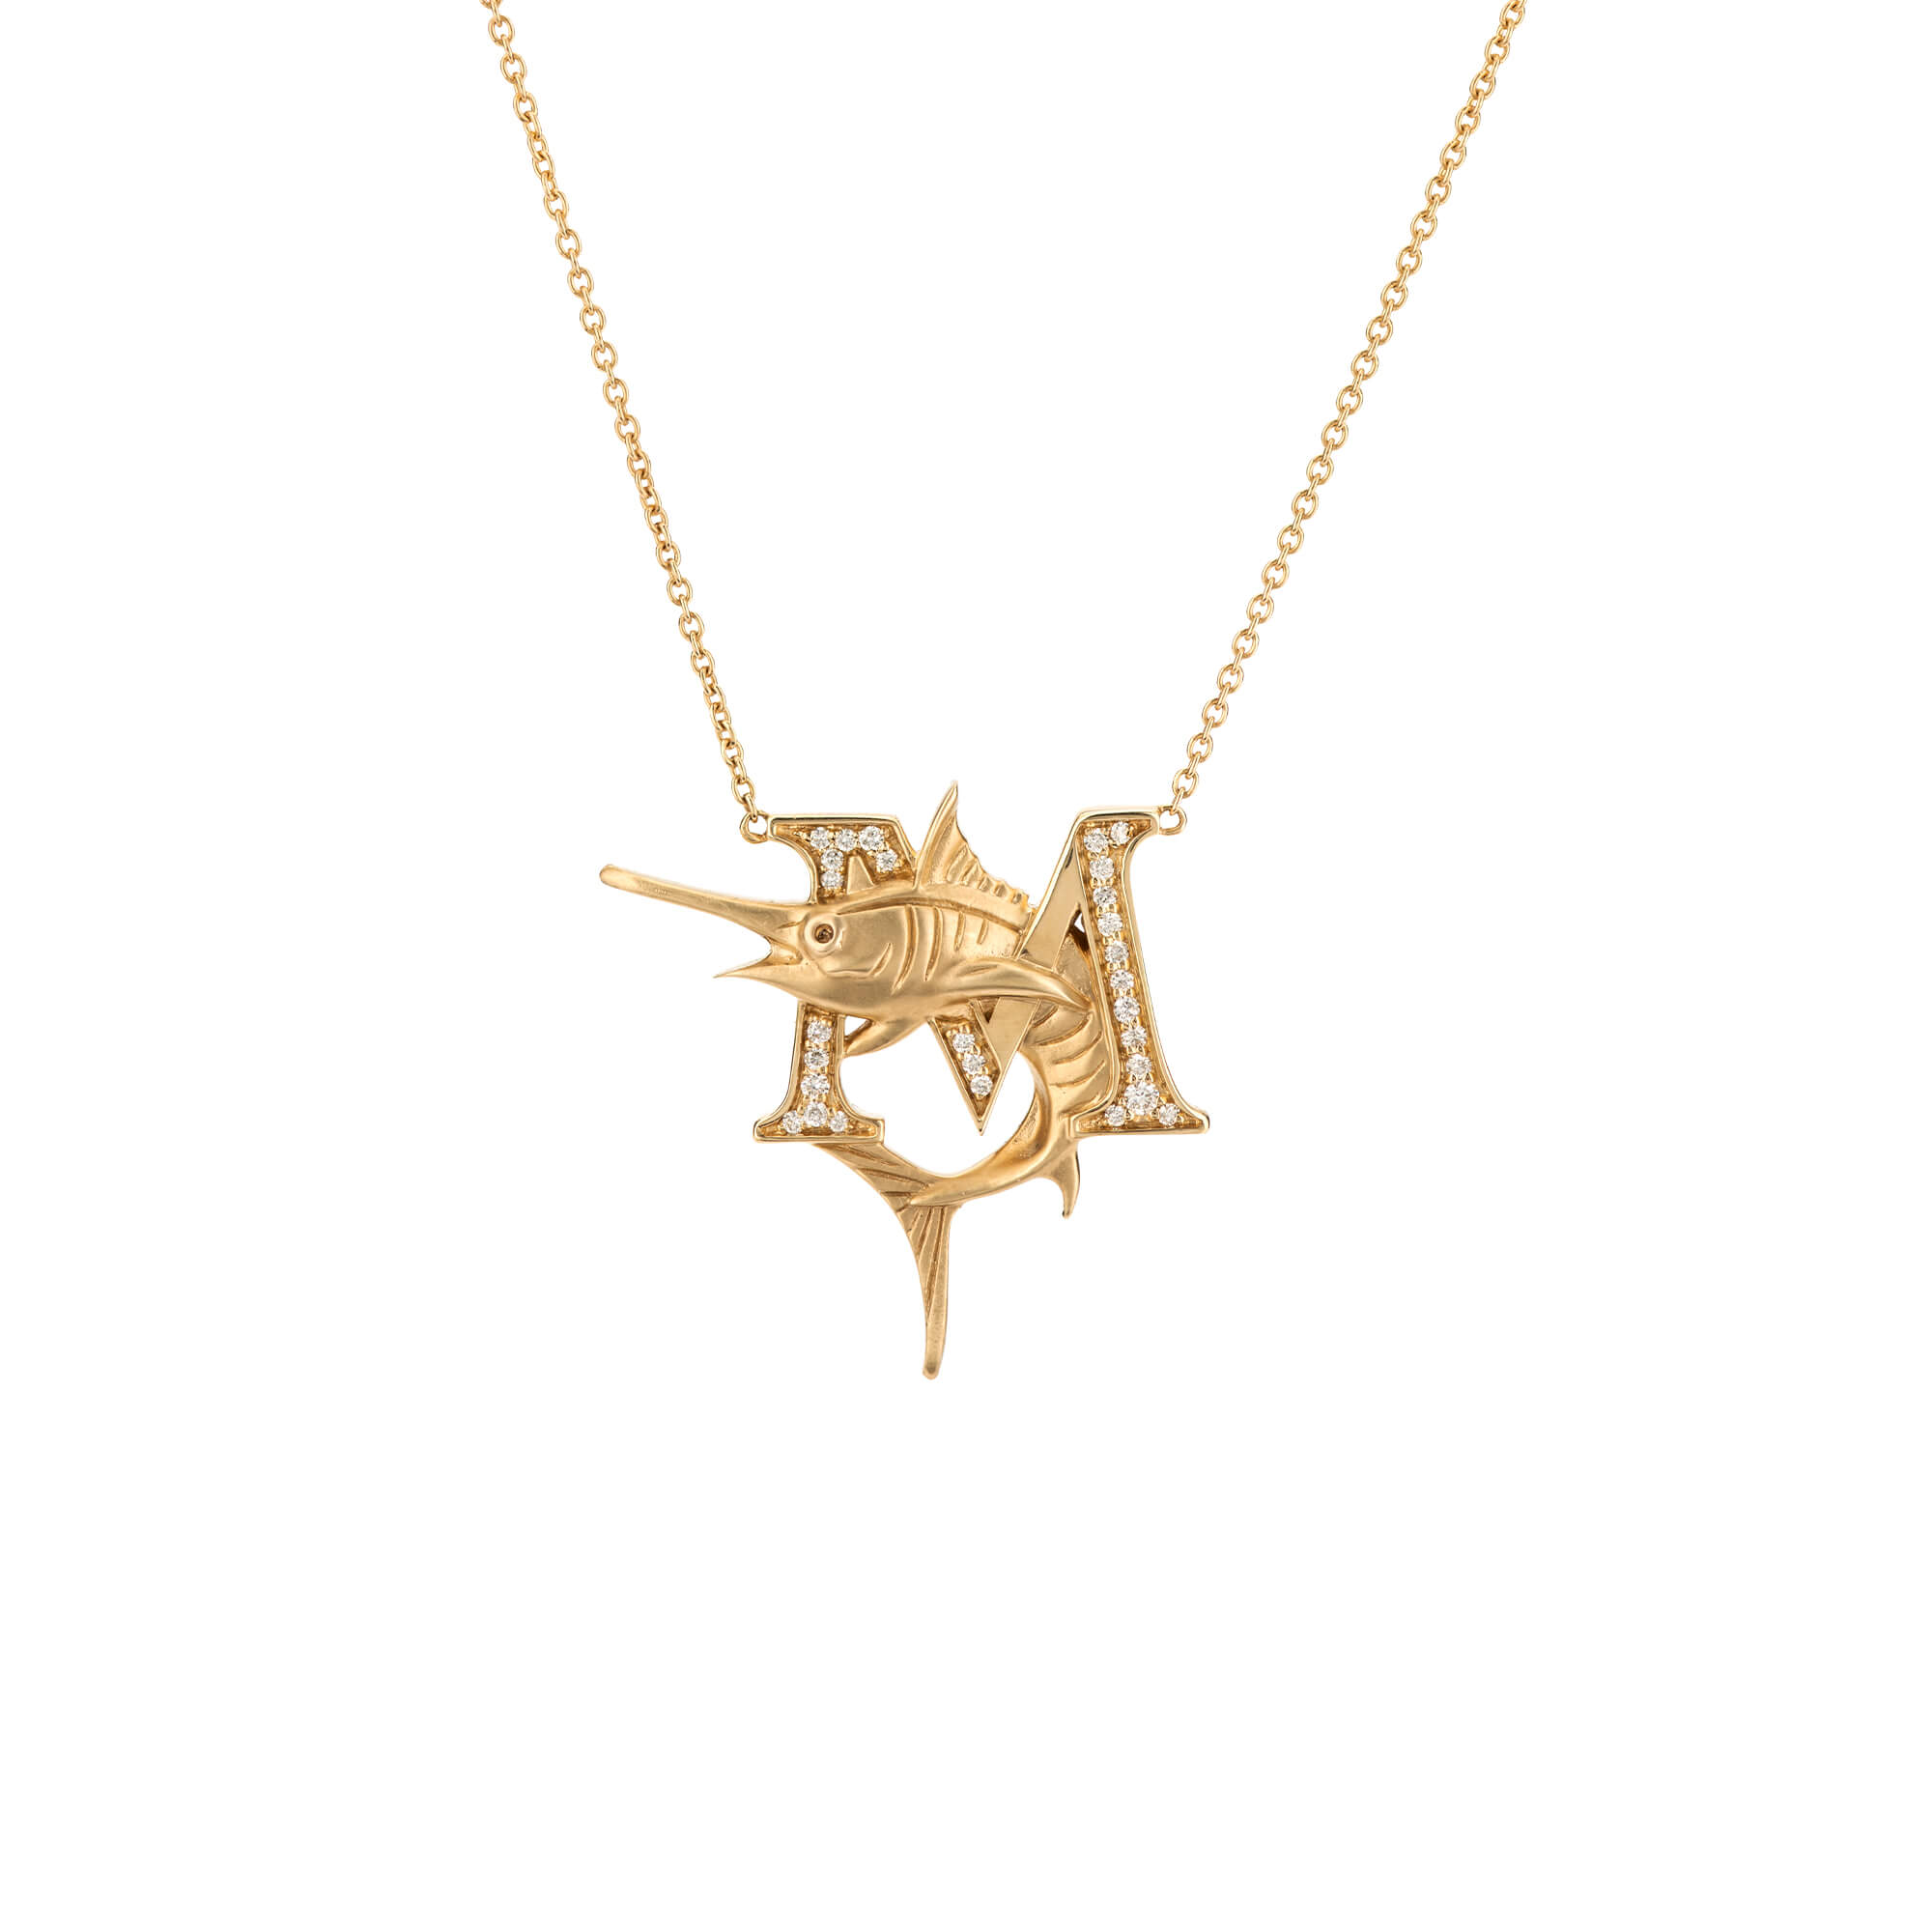 M is for Marlin Gold Necklace | Fish Tales